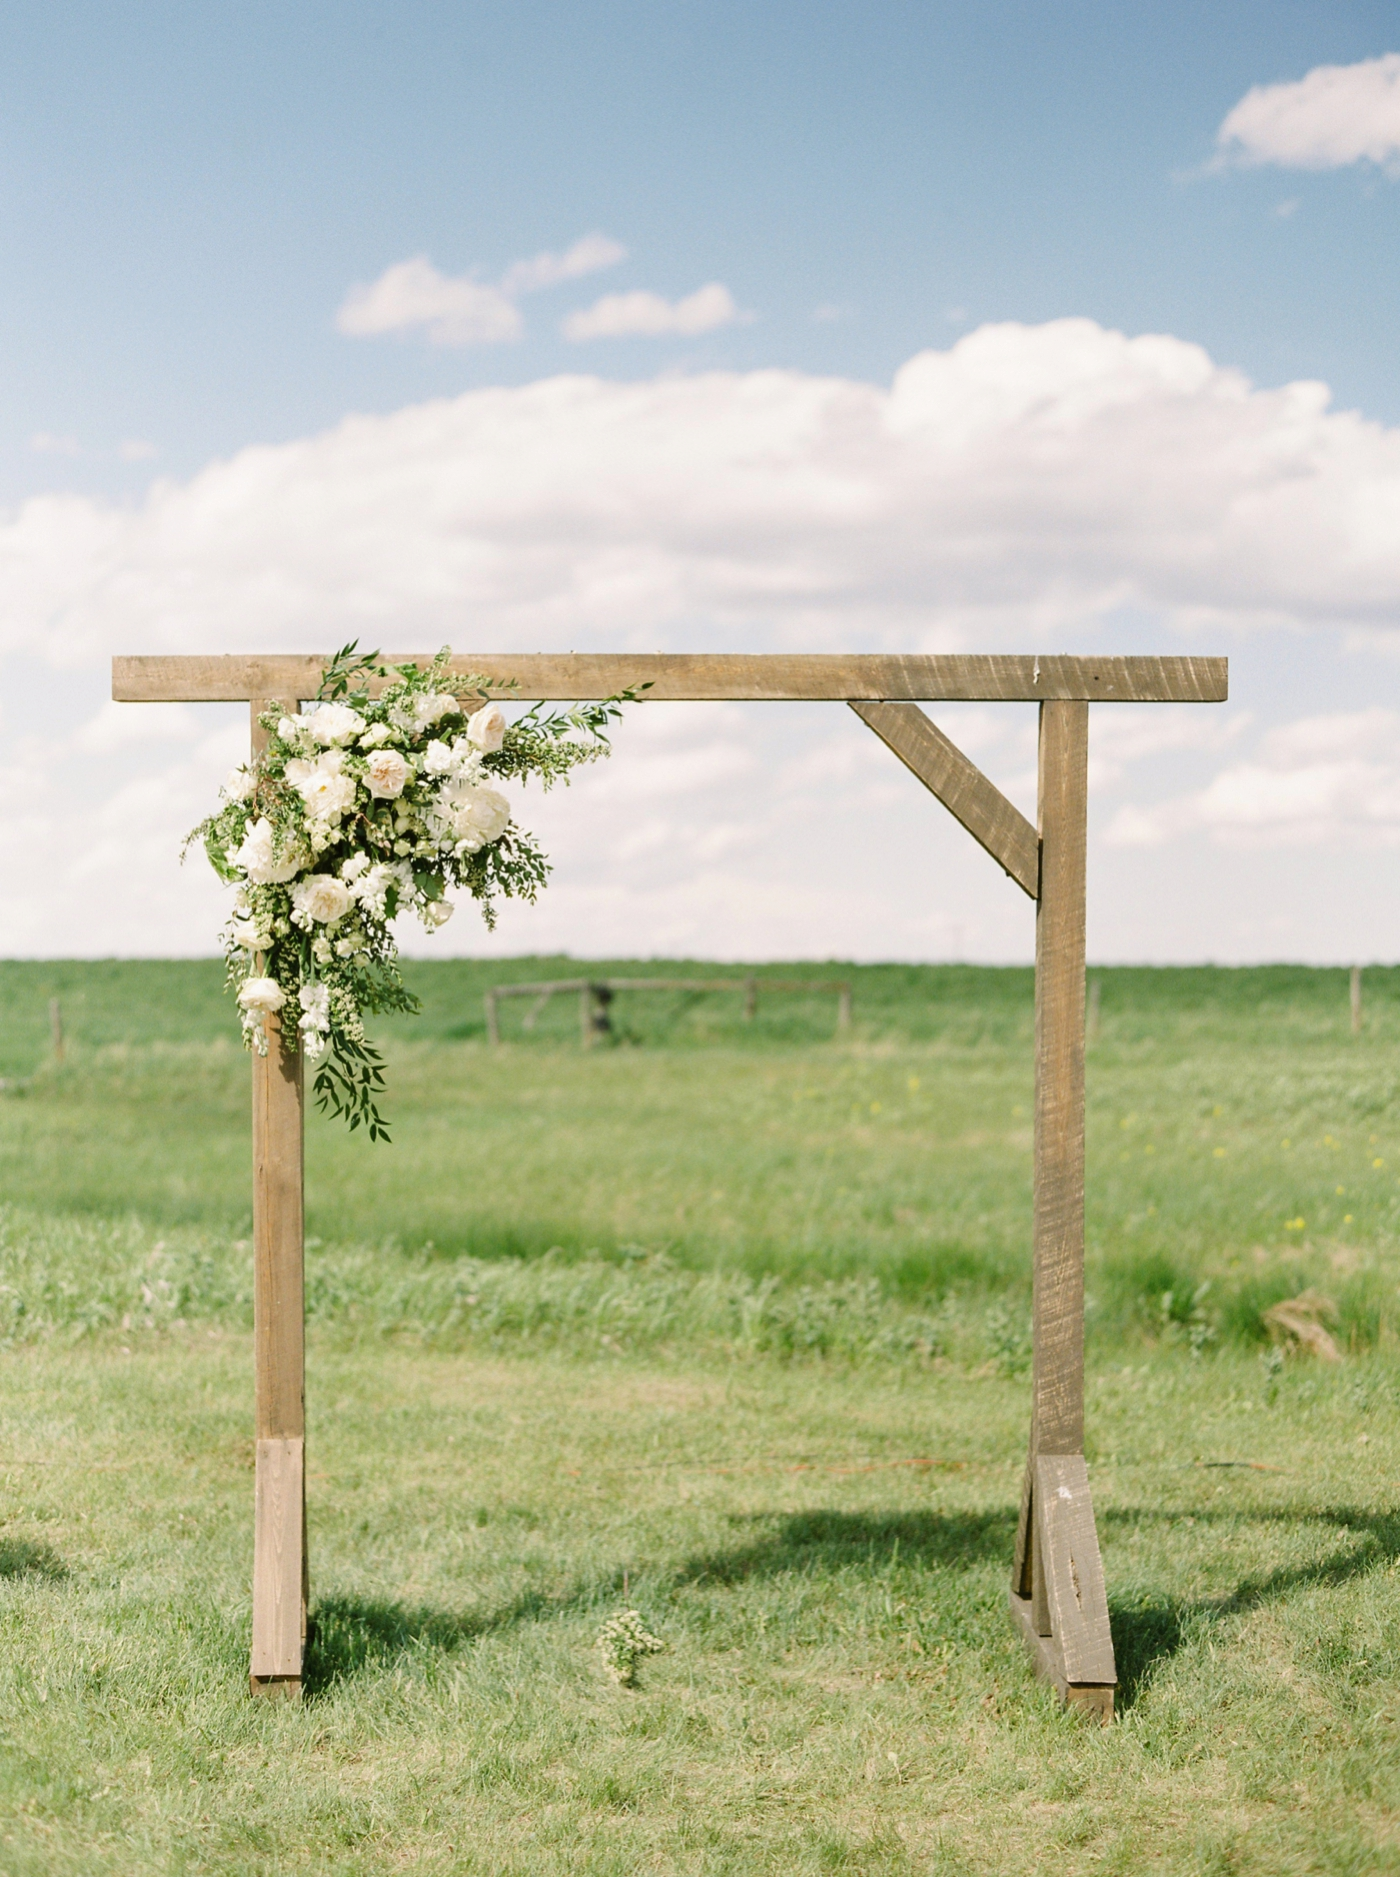 Calgary wedding photographers | The Gathered Farm Wedding | Justine milton fine art film photographer | outdoor farm wedding ceremony rustic arch structure